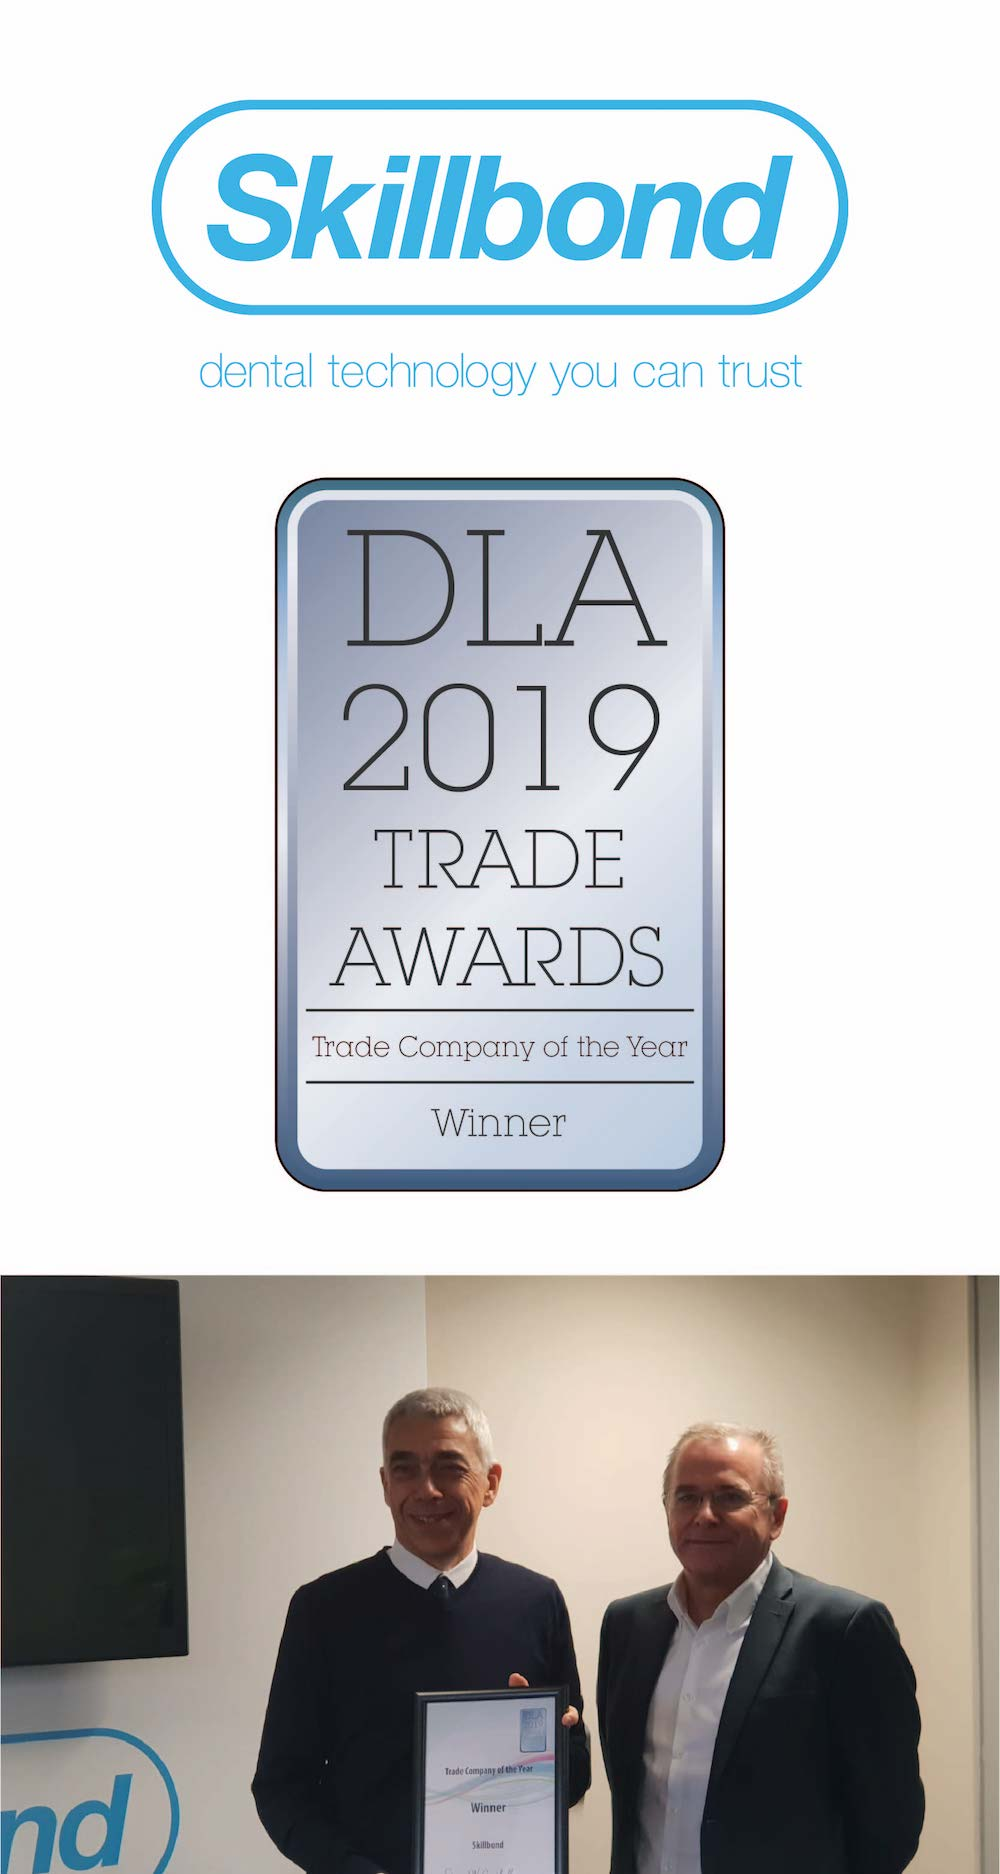 """""""We are extremely pleased to have been voted the Trade Company of the Year at this year's DLA Trade Awards, it means a lot to all of us here at Skillbond to have our peers and customers rate our service and support so highly."""""""